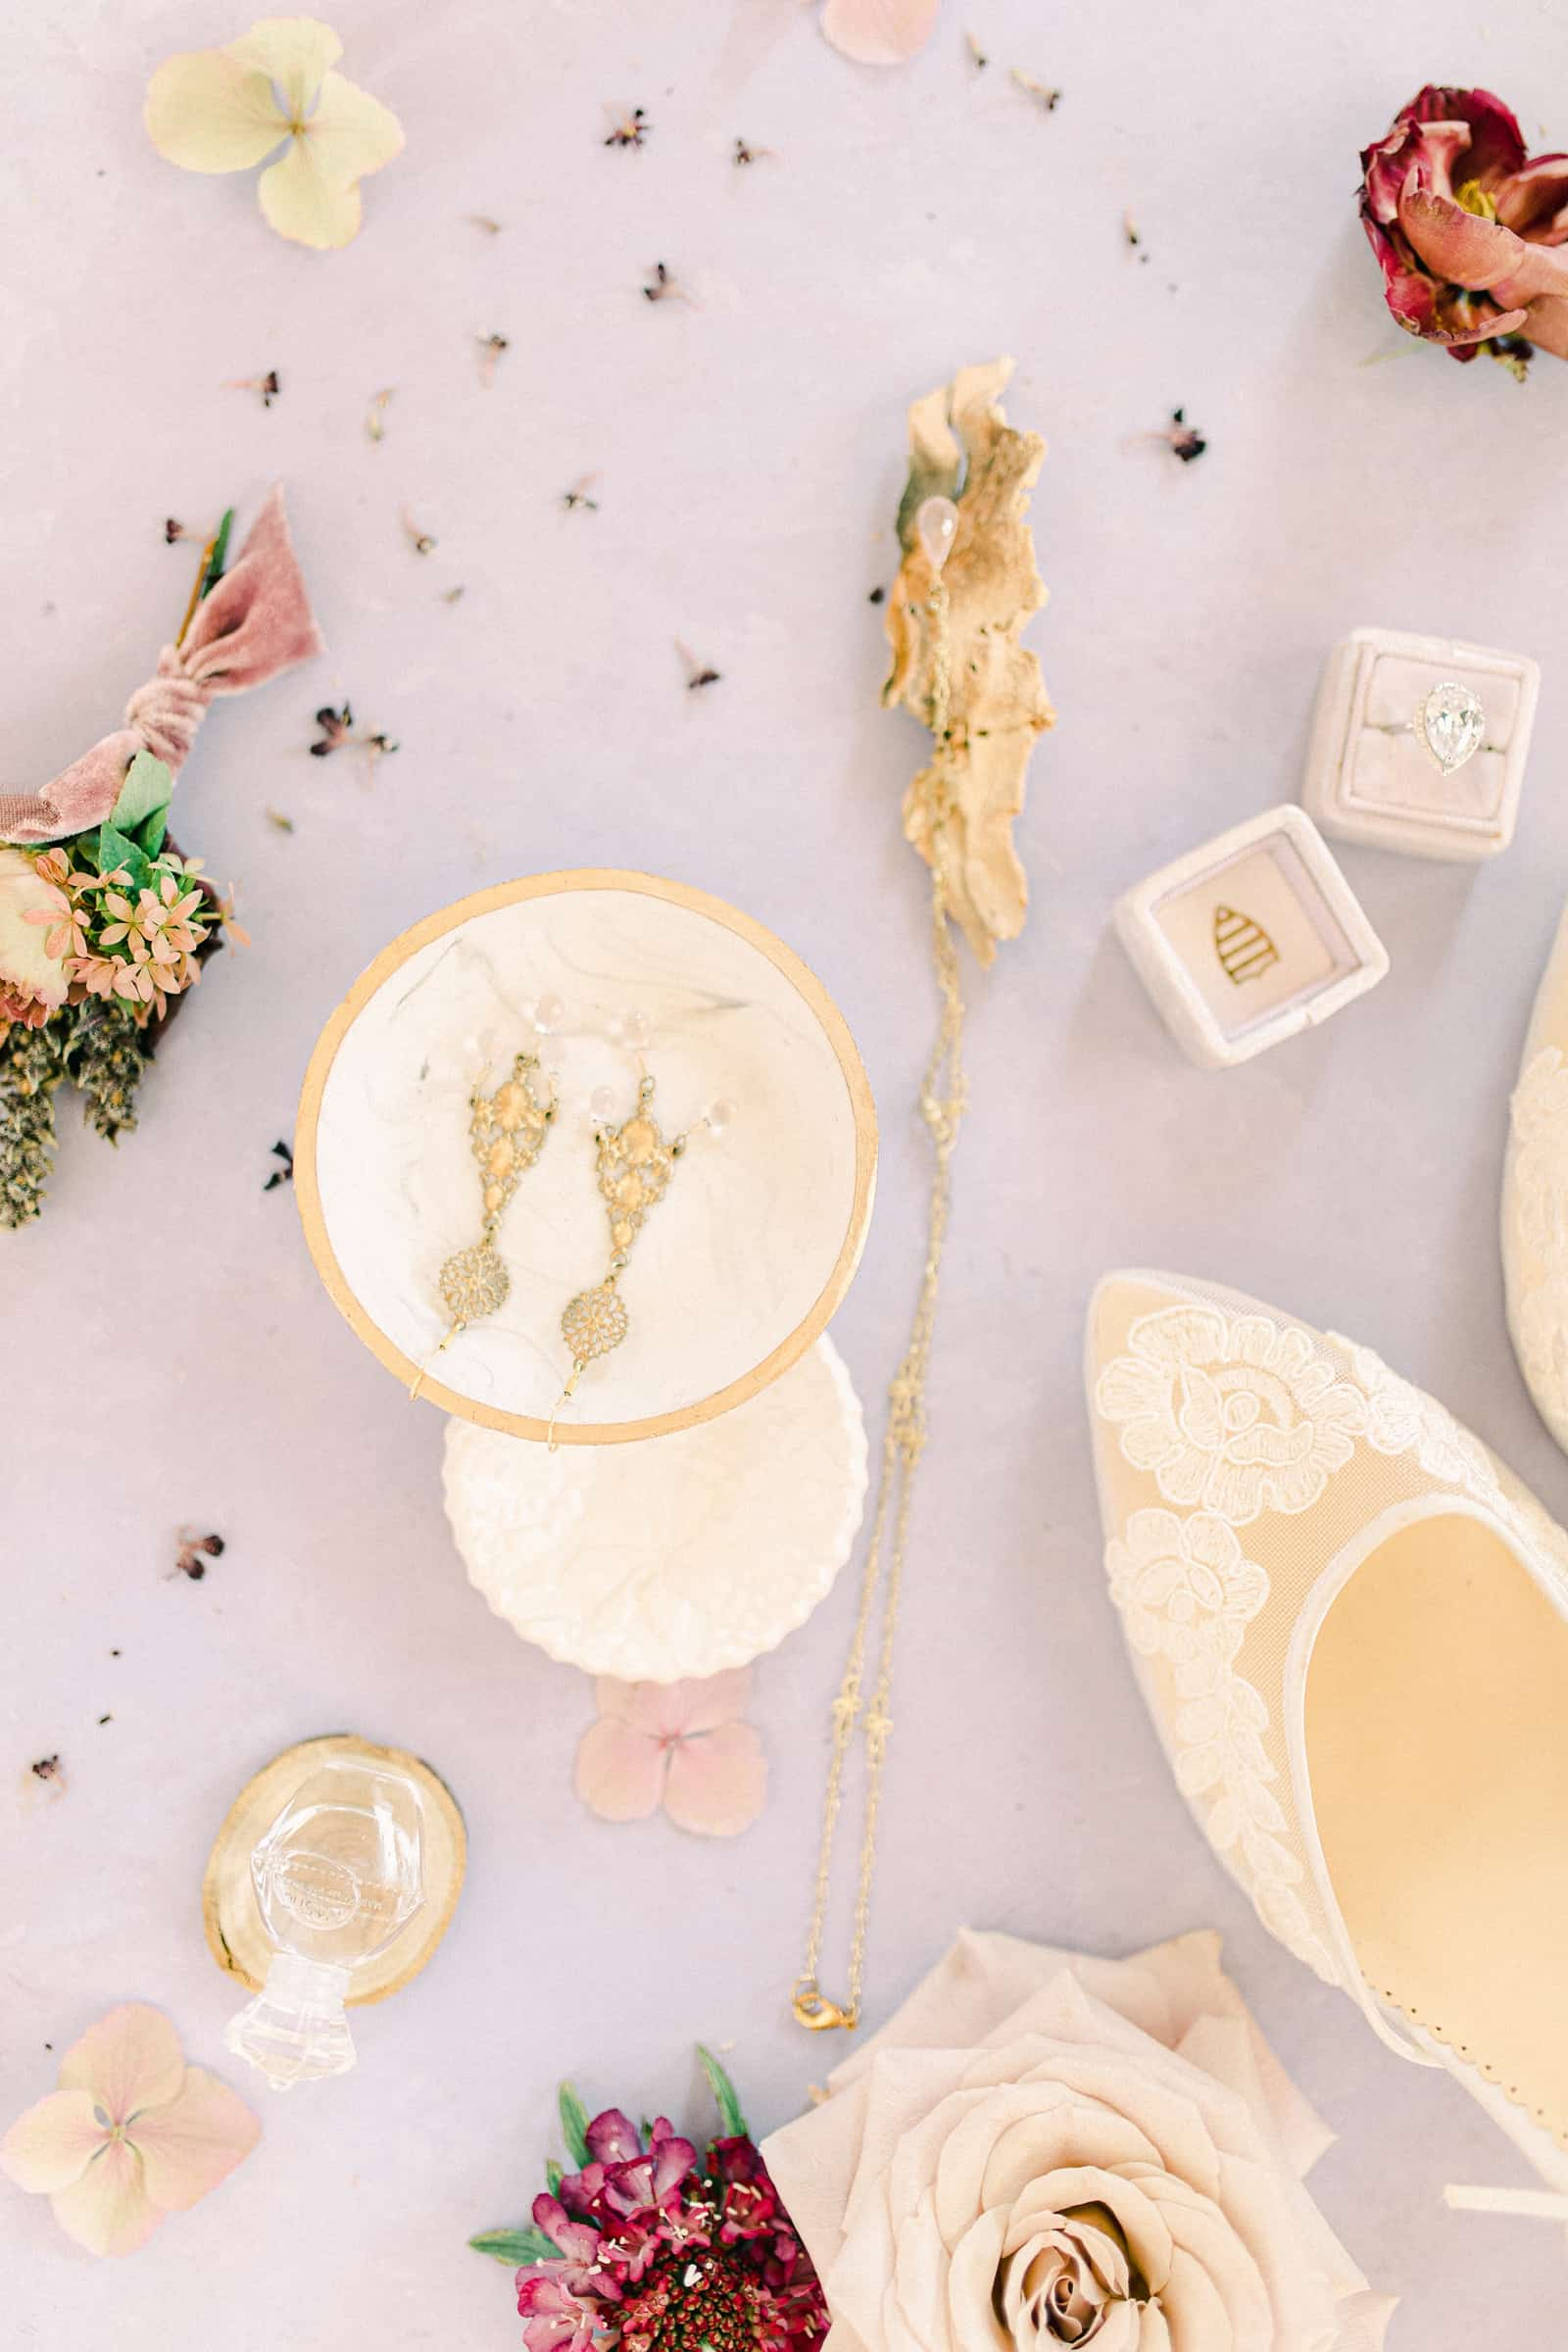 Fine art wedding details flat lay with purple tablecloth and designer shoes for the bride, gold wedding earrings